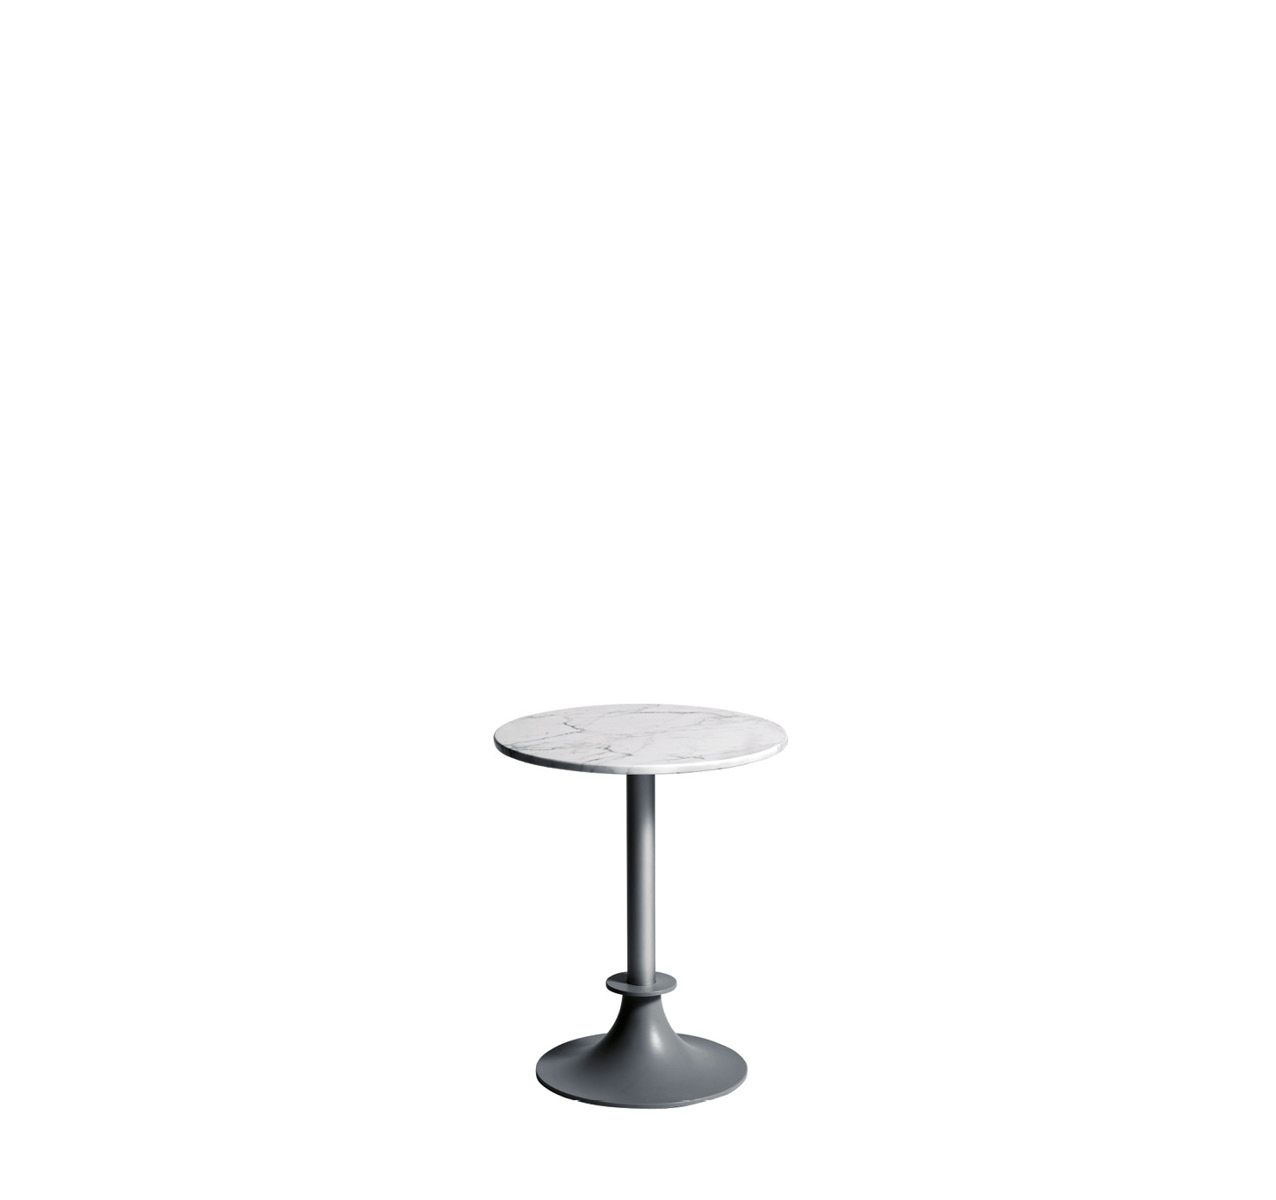 Lord Yi Round Table White Carrara Marble, No